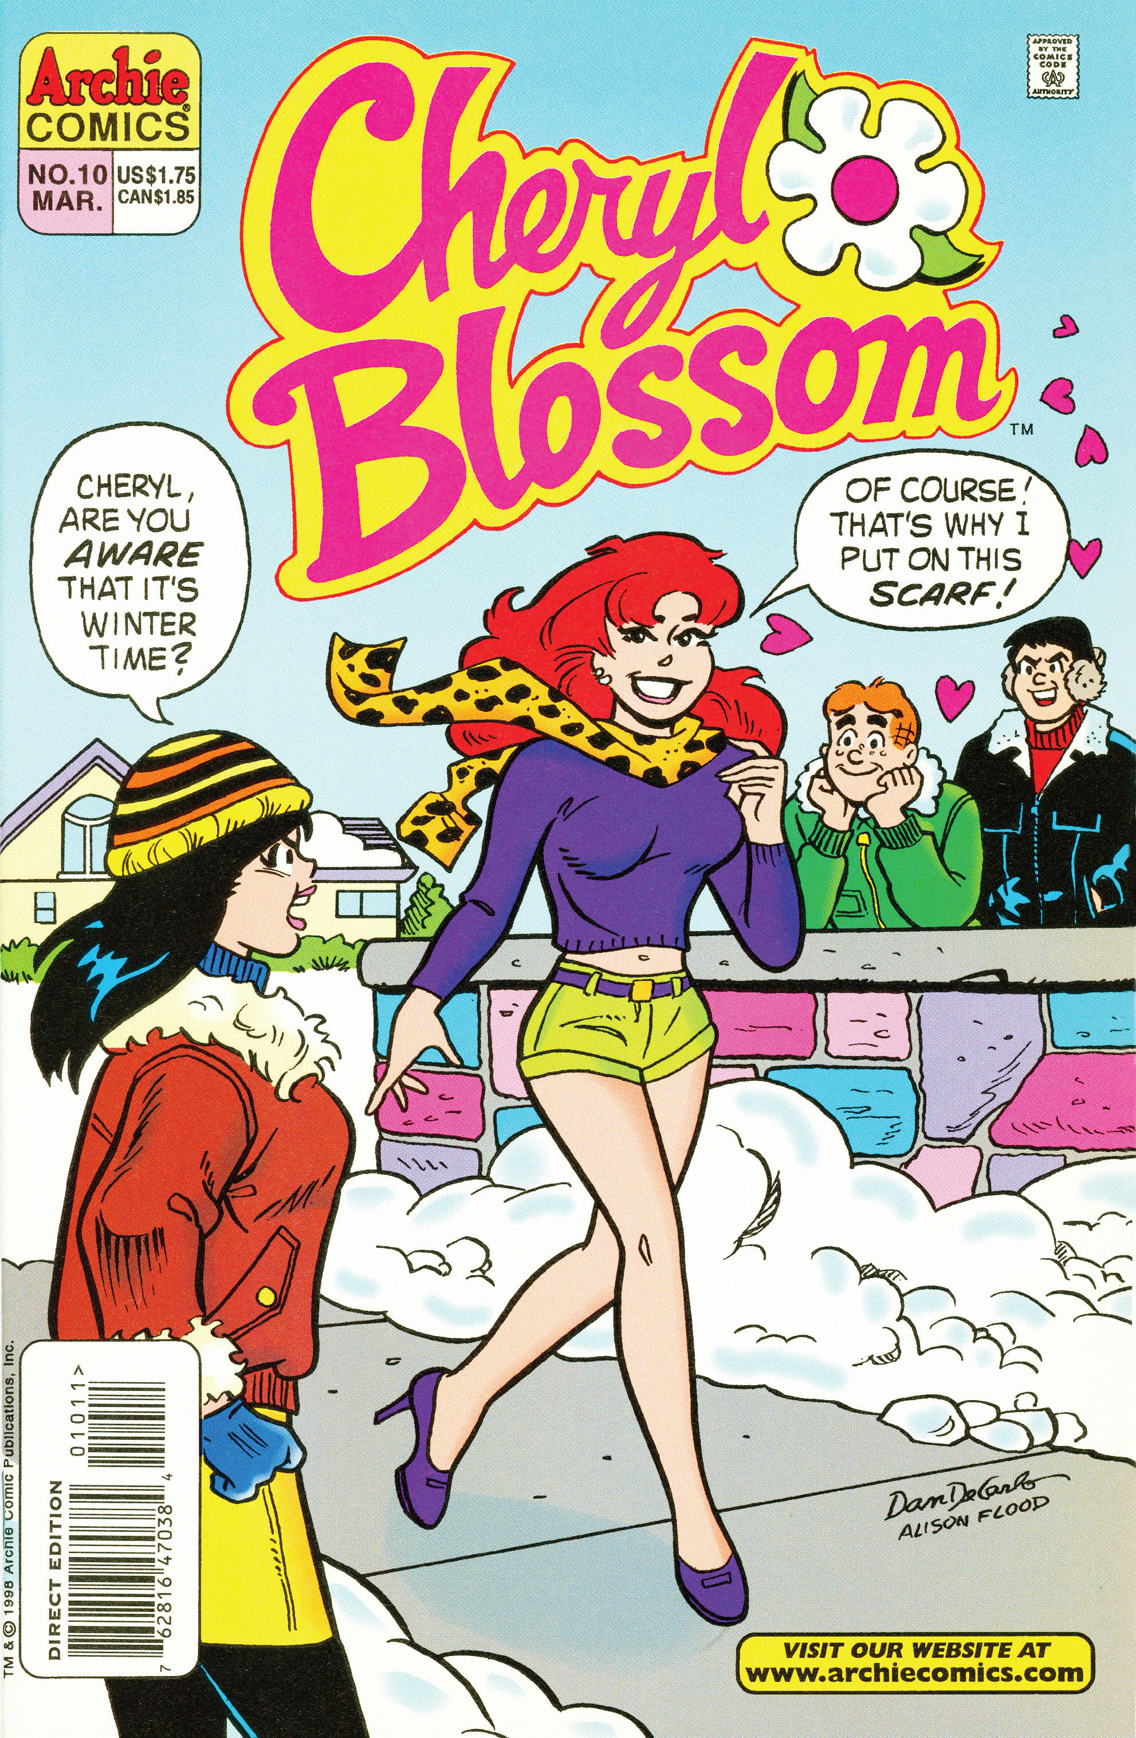 Cheryl Blossom #10 By: Dan Parent, Dan DeCarlo, Jon D'Agostino, Bill Yoshida, Barry Grossman, Alison Flood